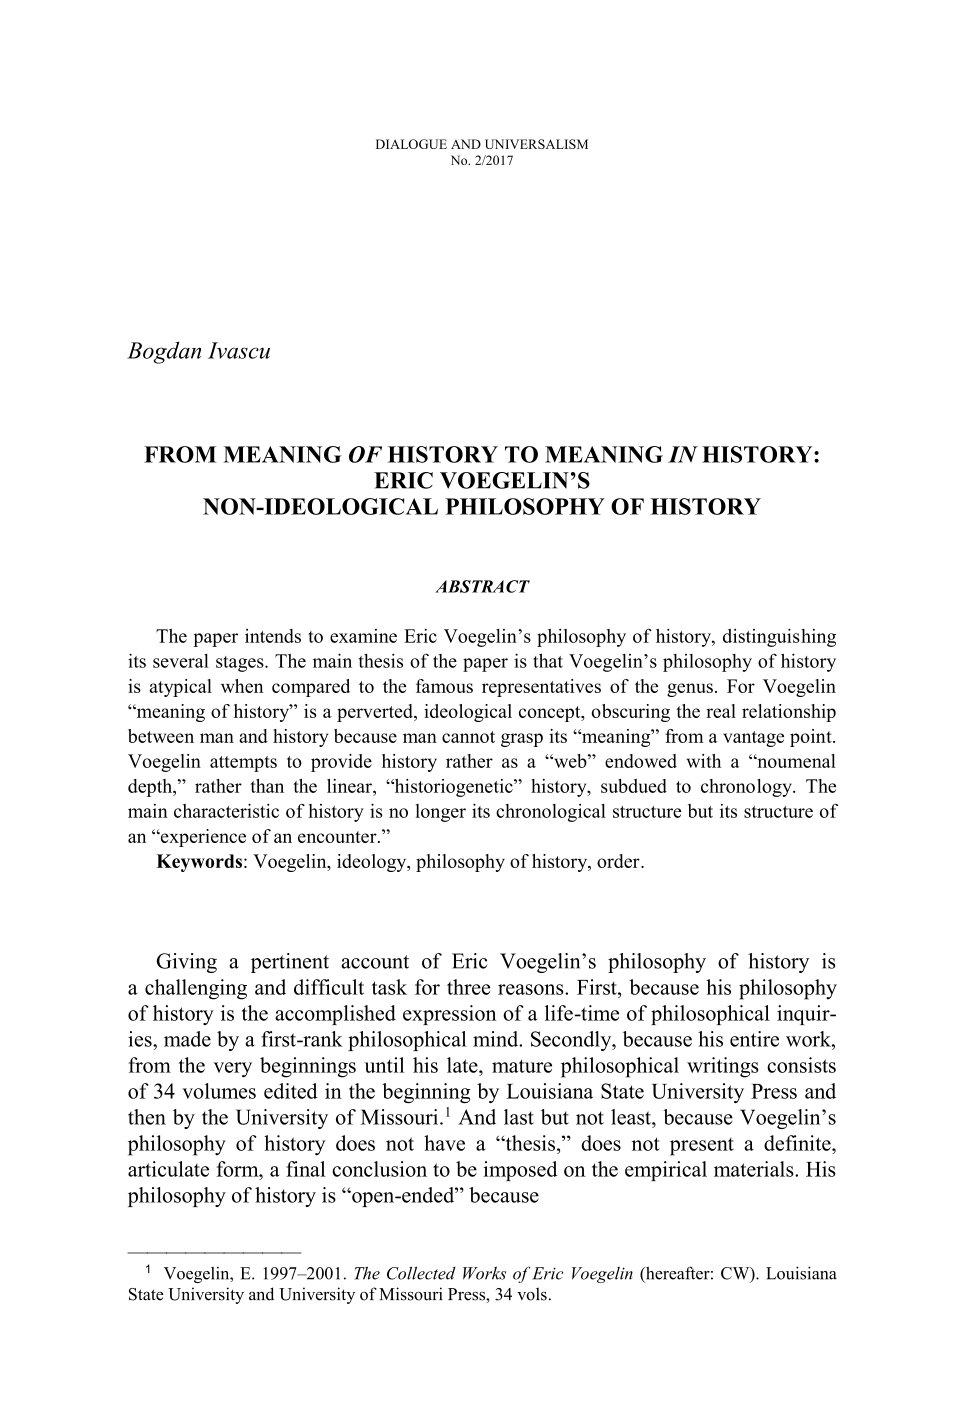 From Meaning of History to Meaning in History: Eric Voegelin's  Non-Ideological Philosophy of History - Bogdan Ivascu - Dialogue and  Universalism (Philosophy Documentation Center)